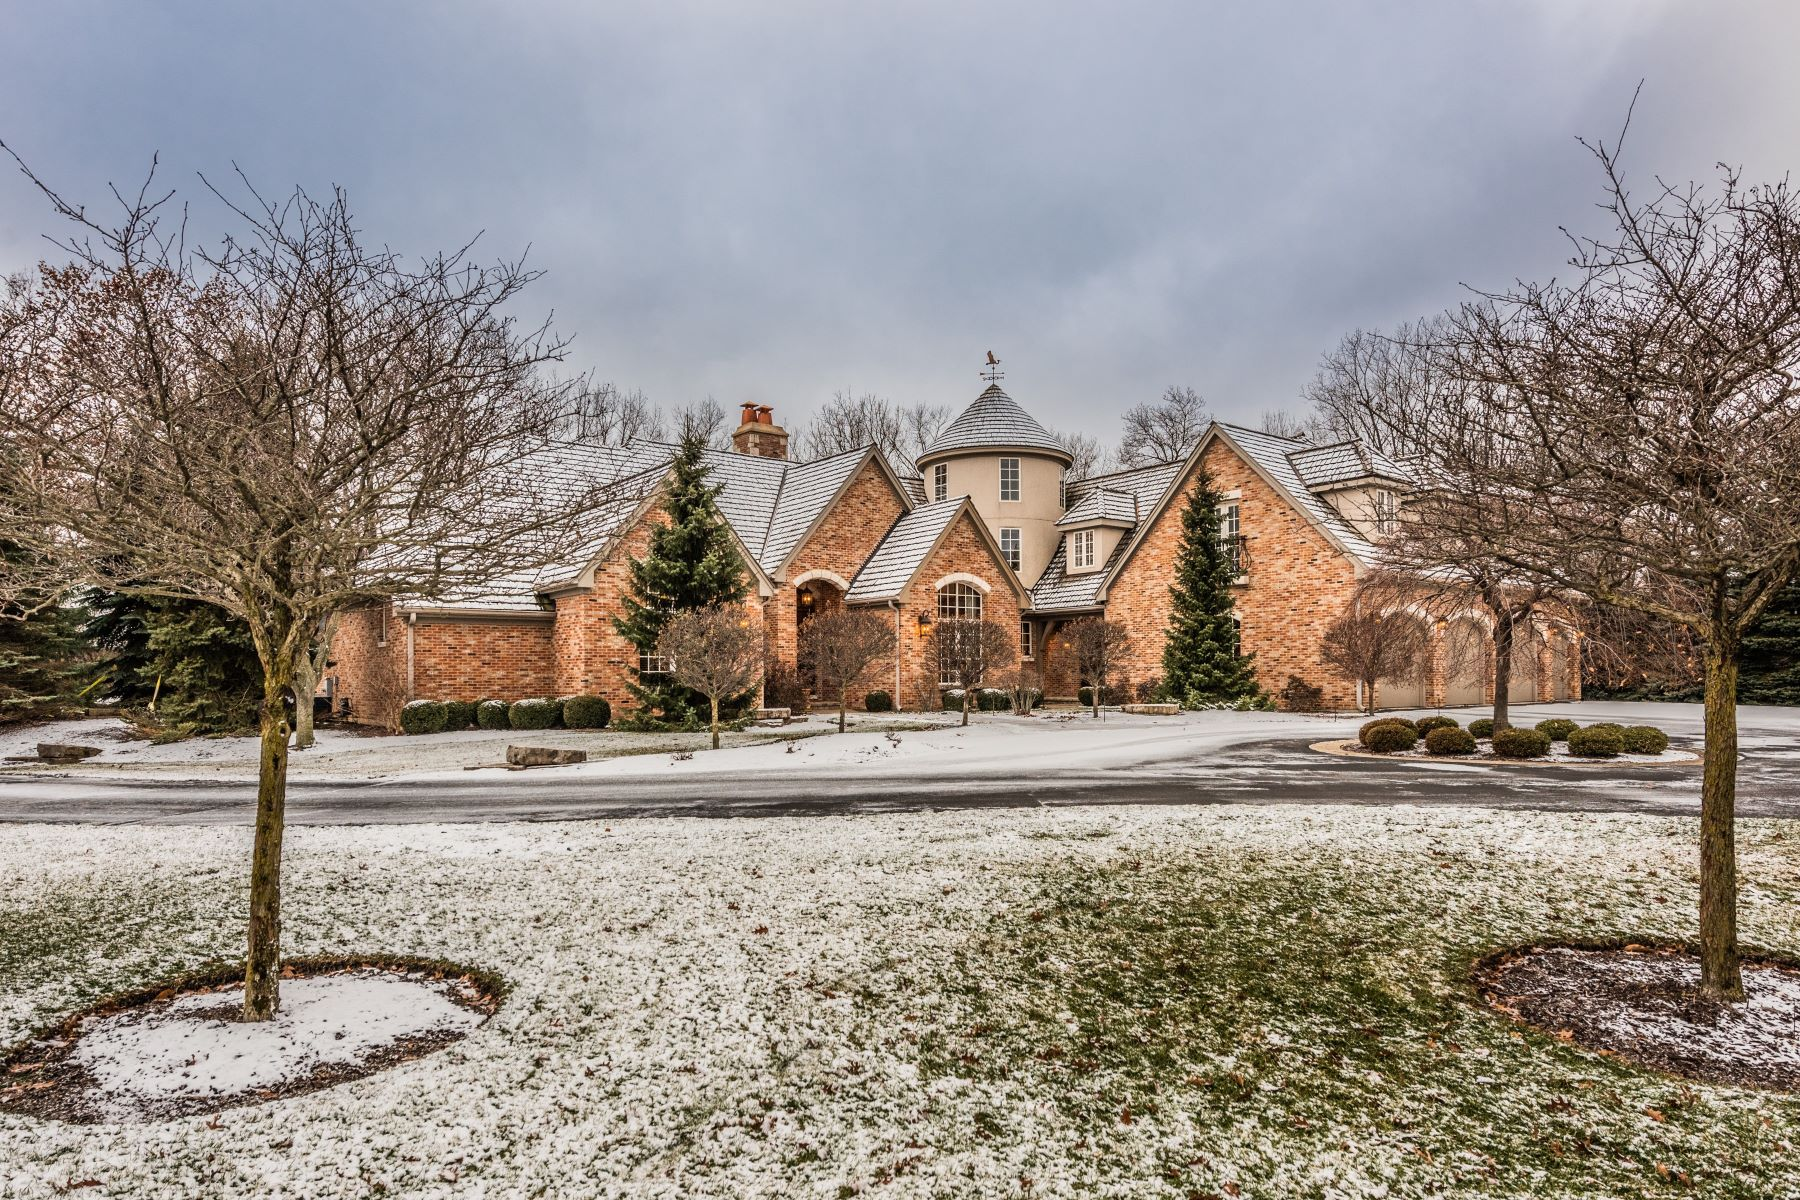 Single Family Home for Active at 26556 N Topanga Trail, Wauconda, IL 60084 26556 N Topanga Trail Wauconda, Illinois 60084 United States